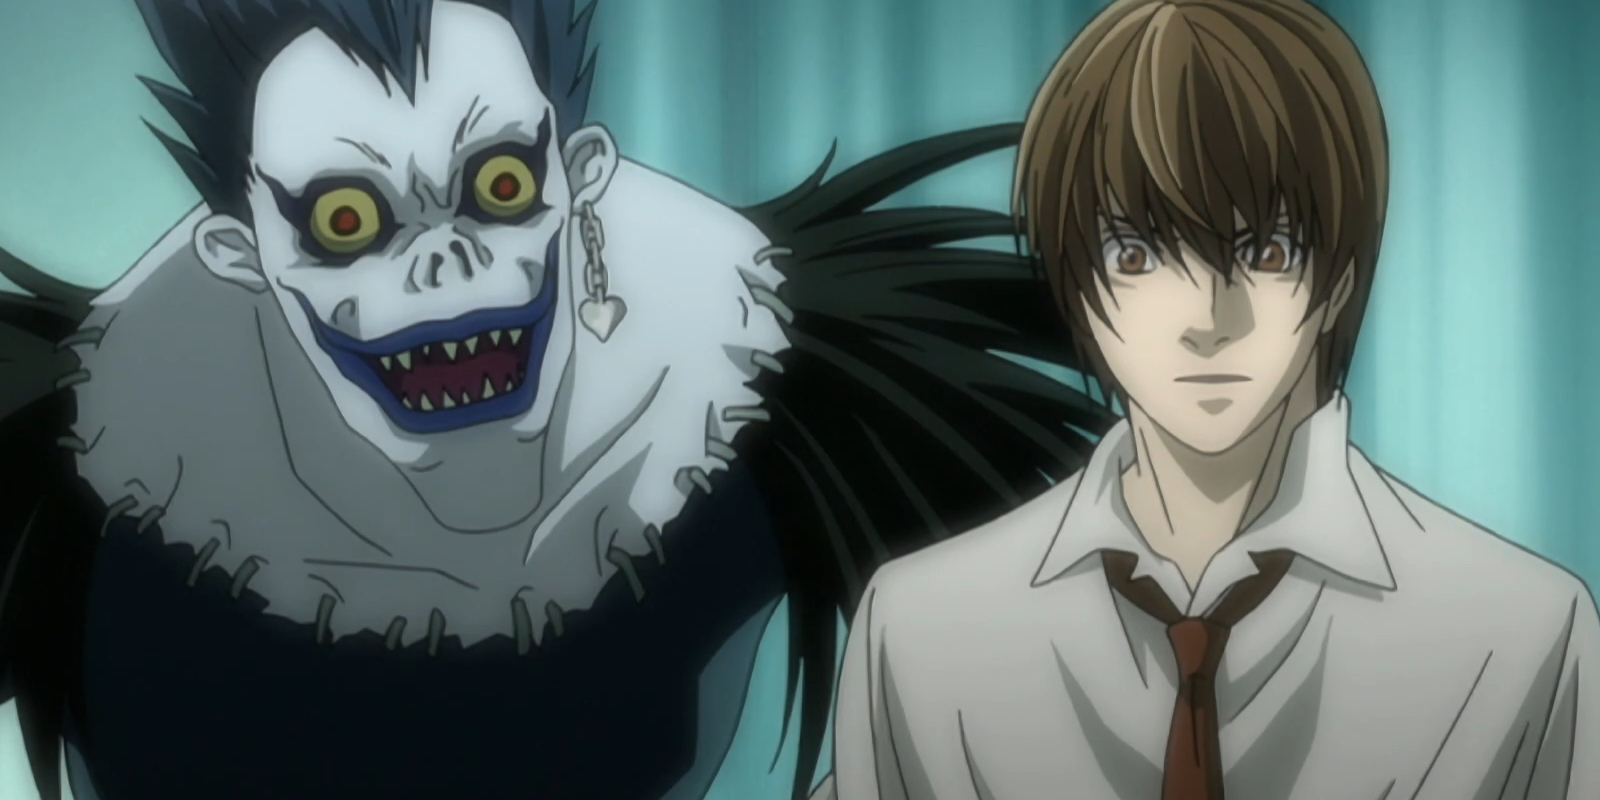 Anime Characters Images : Death note anime characters pixshark images